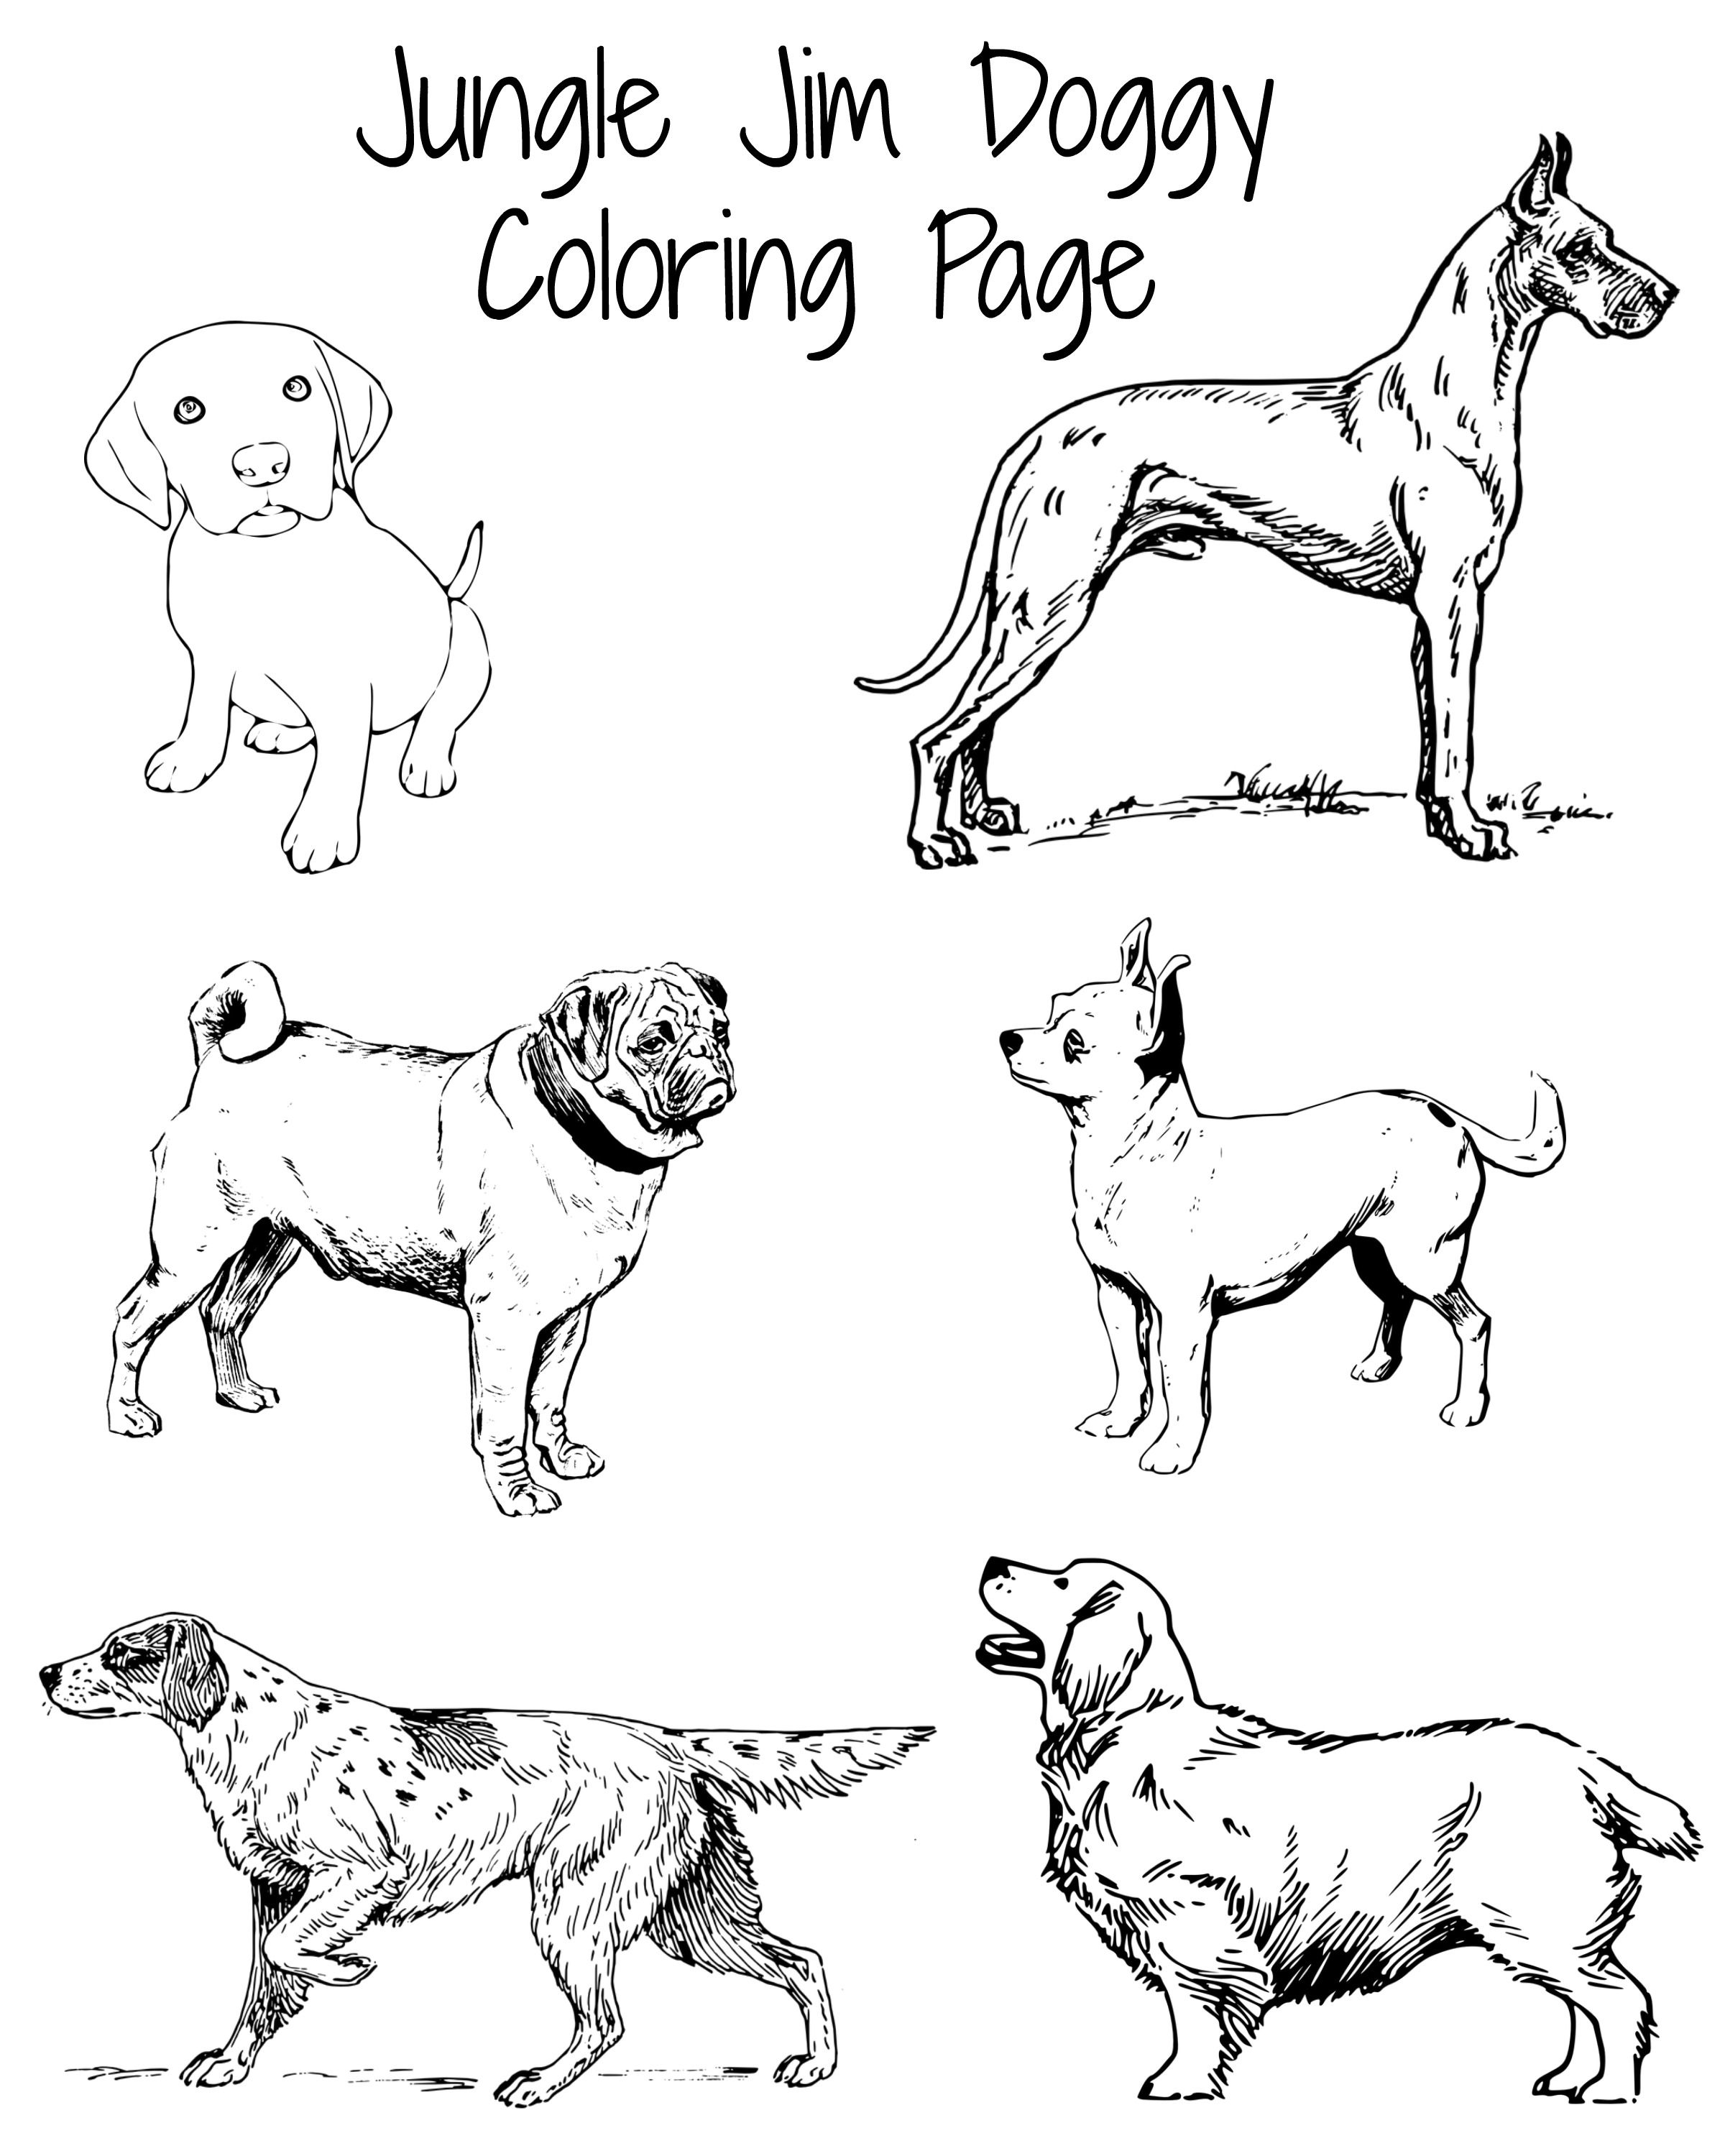 Coloring summer activities - Doggy Coloring Page Perfect For The Dog Days Of Summer Need Activities For The